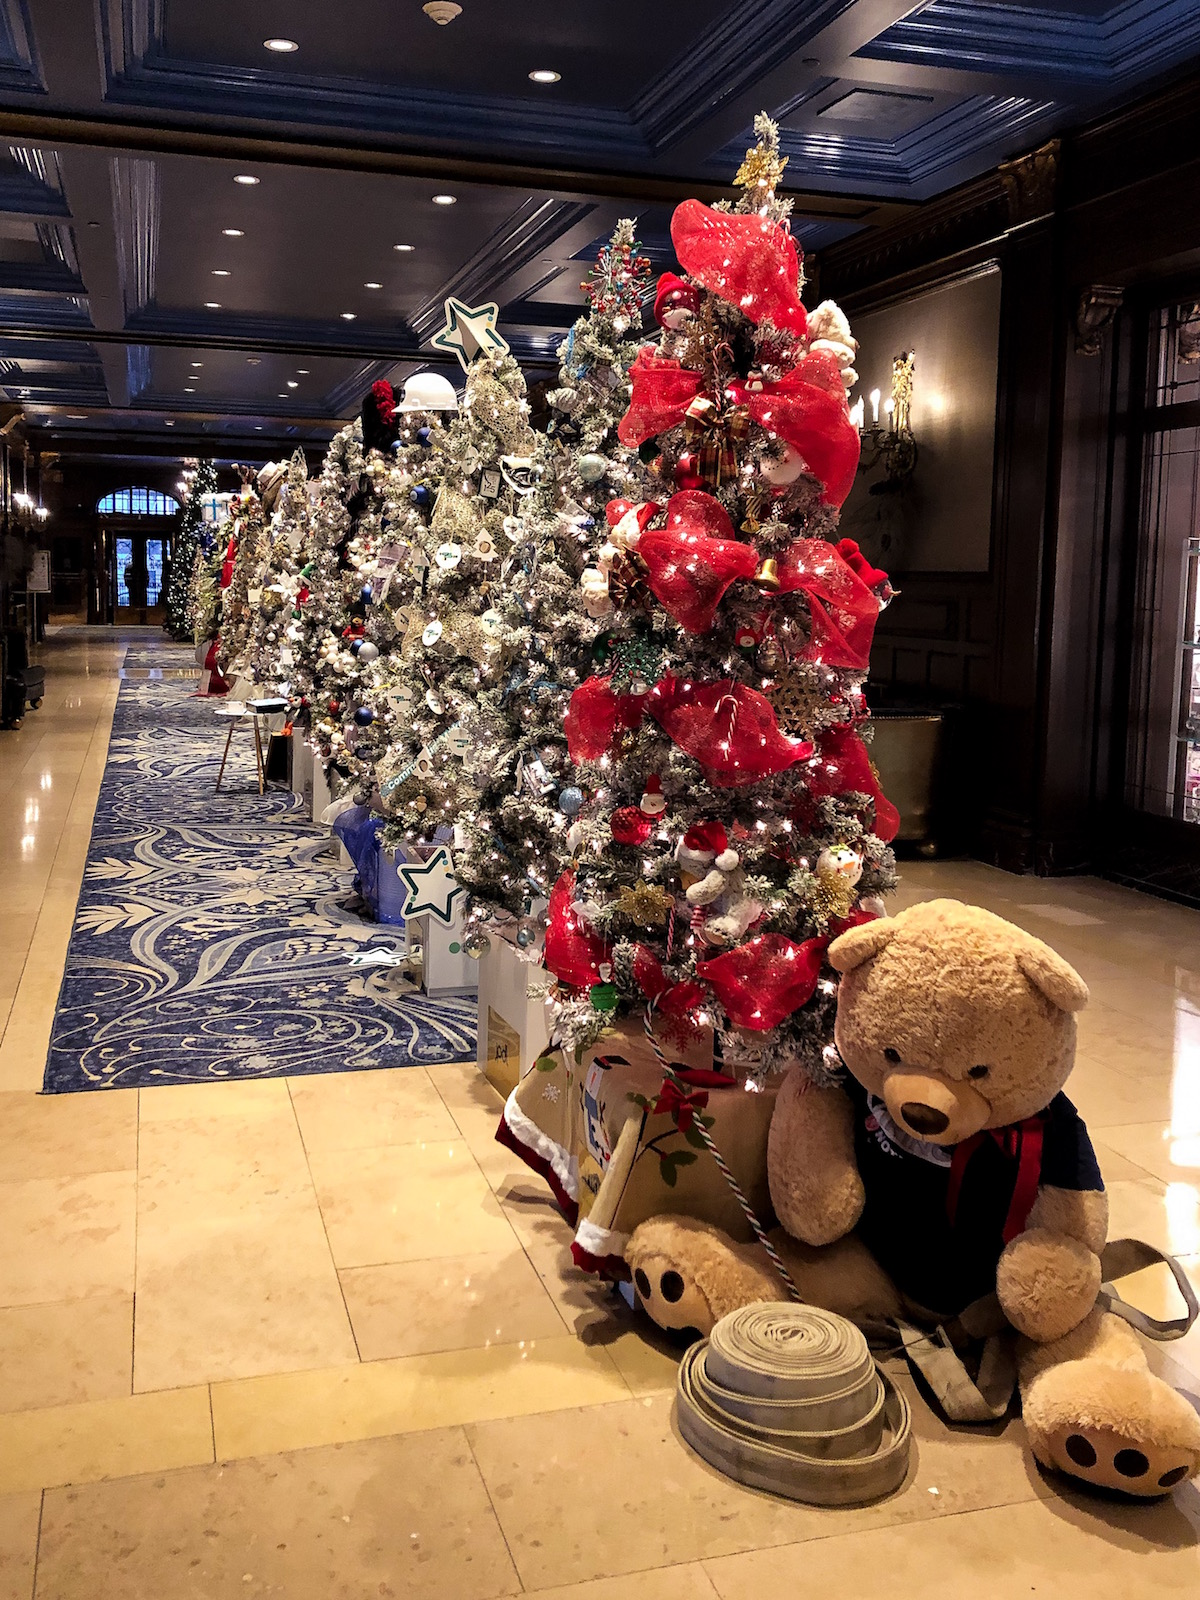 Fairmont Le Château Frontenac Hotel Christmas Decorations